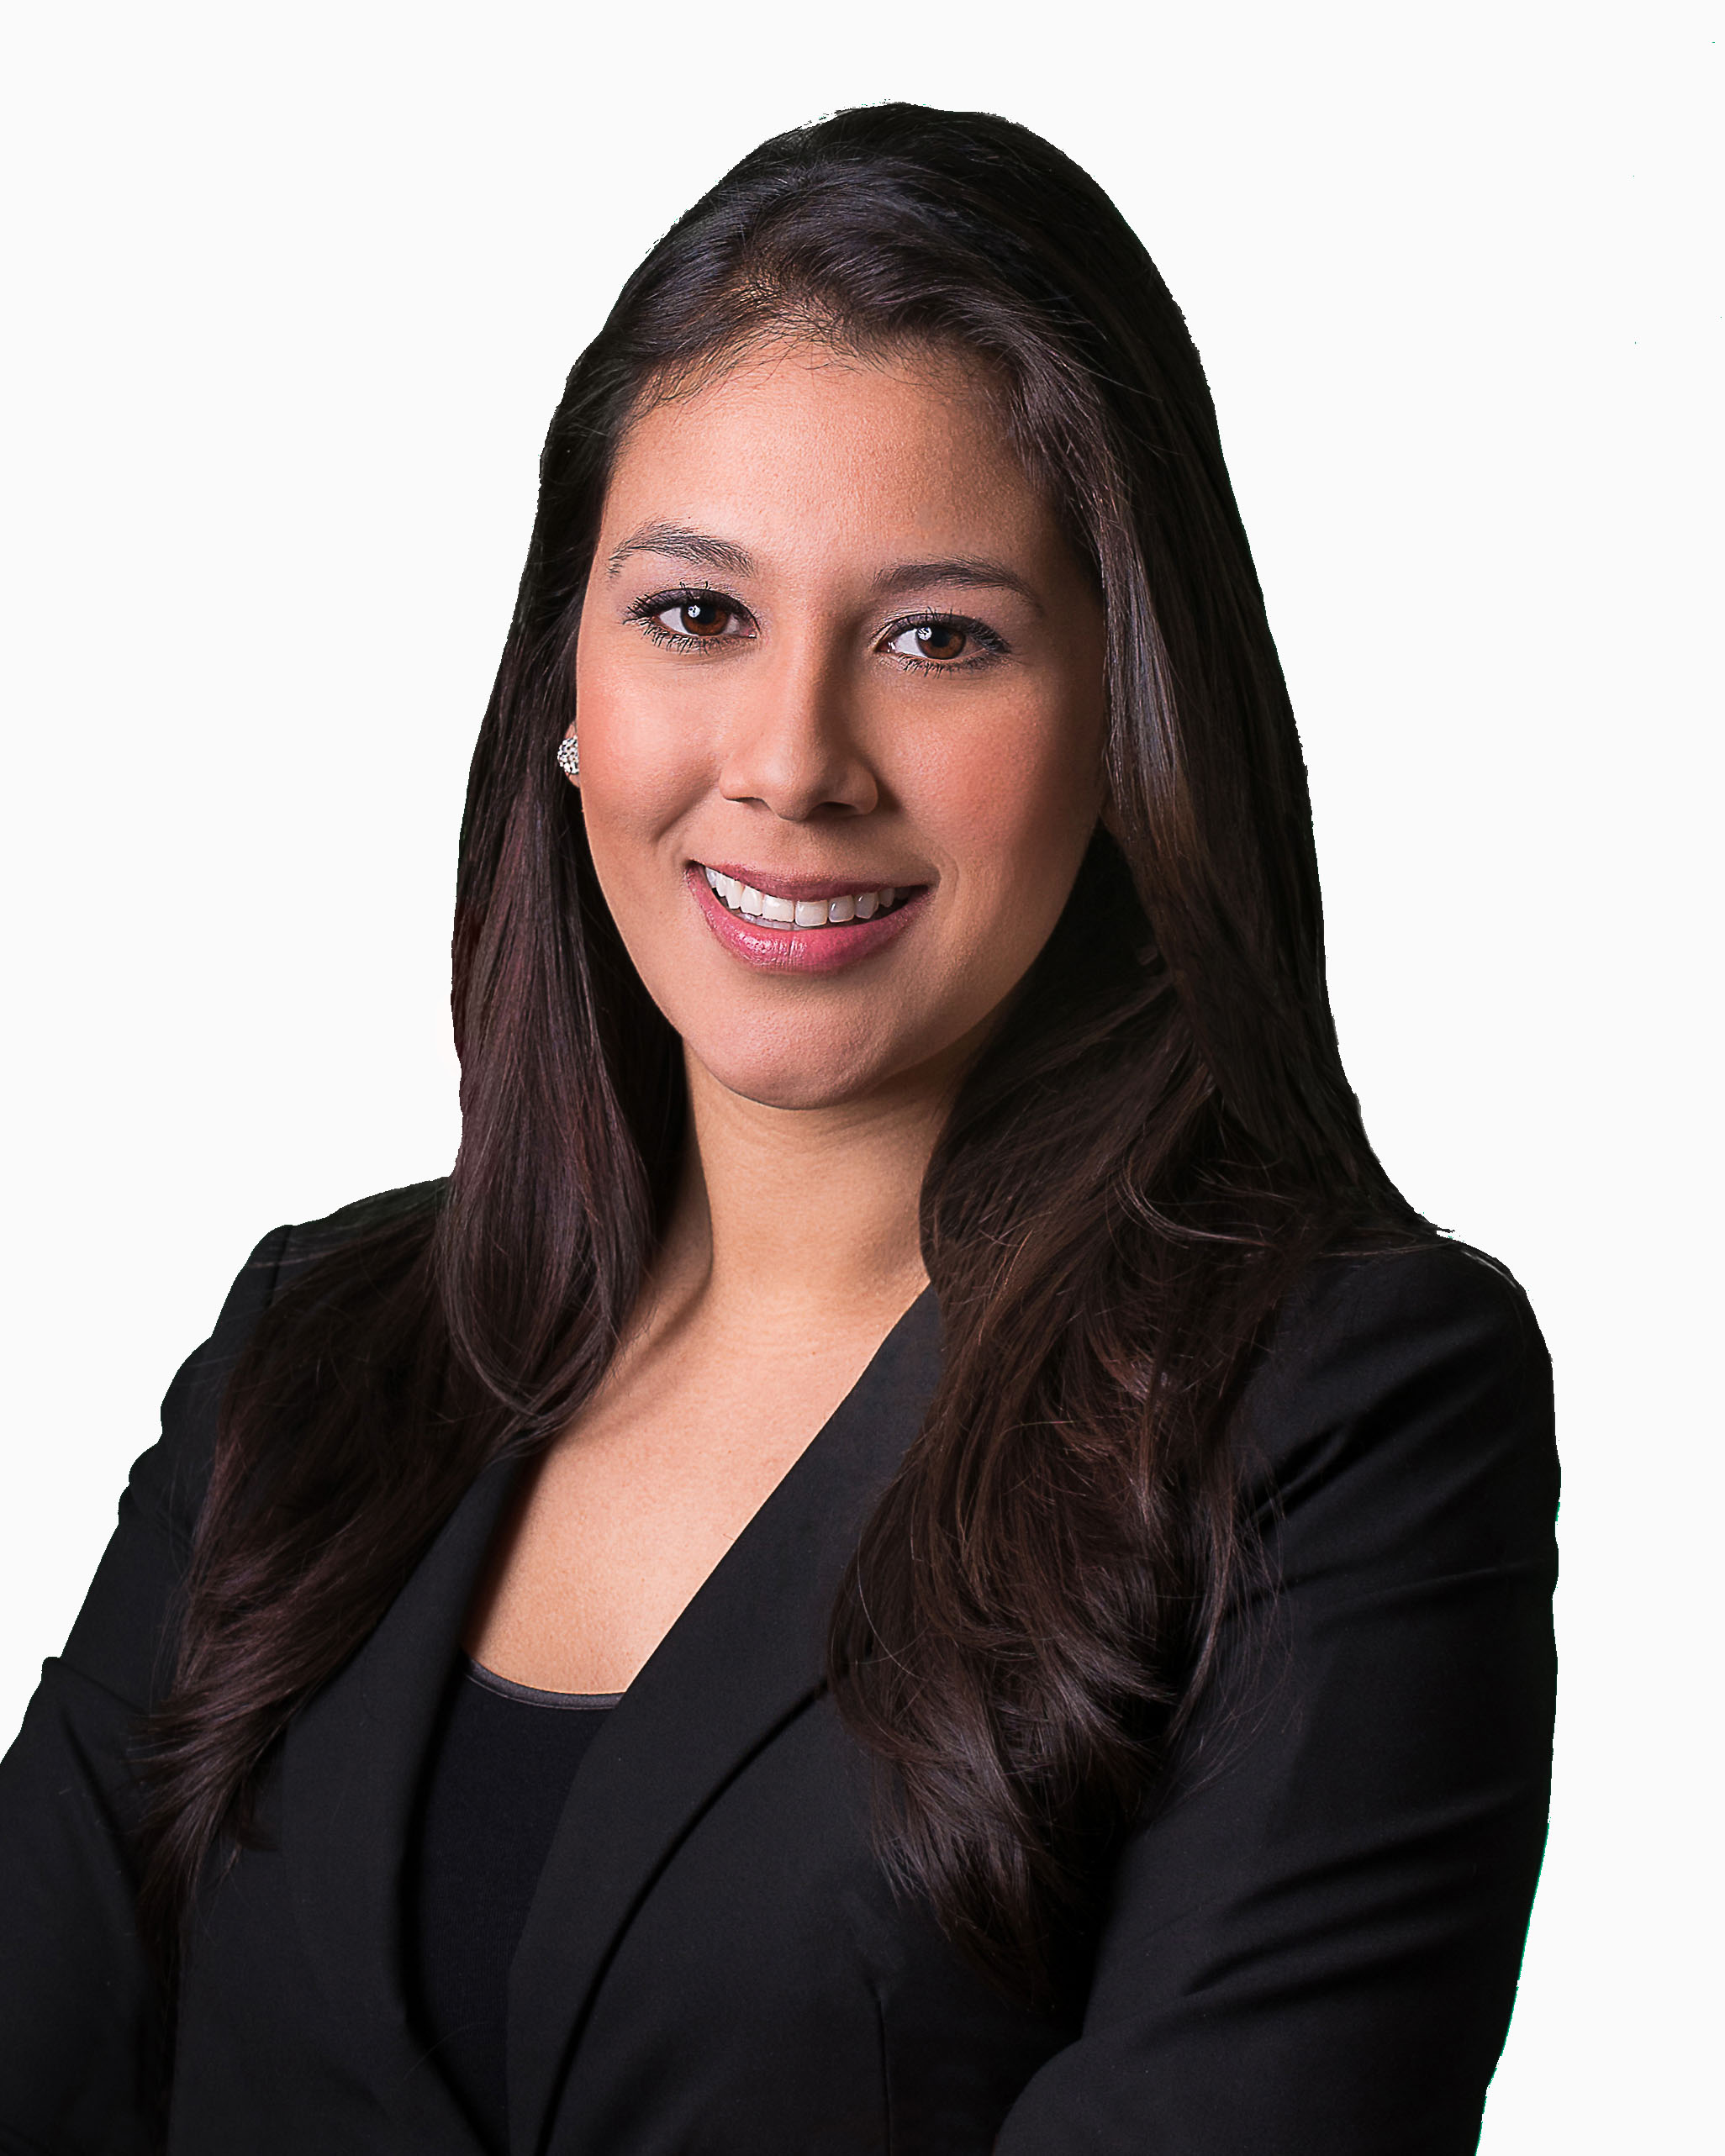 Elected as President of El Paso Young Lawyers Association